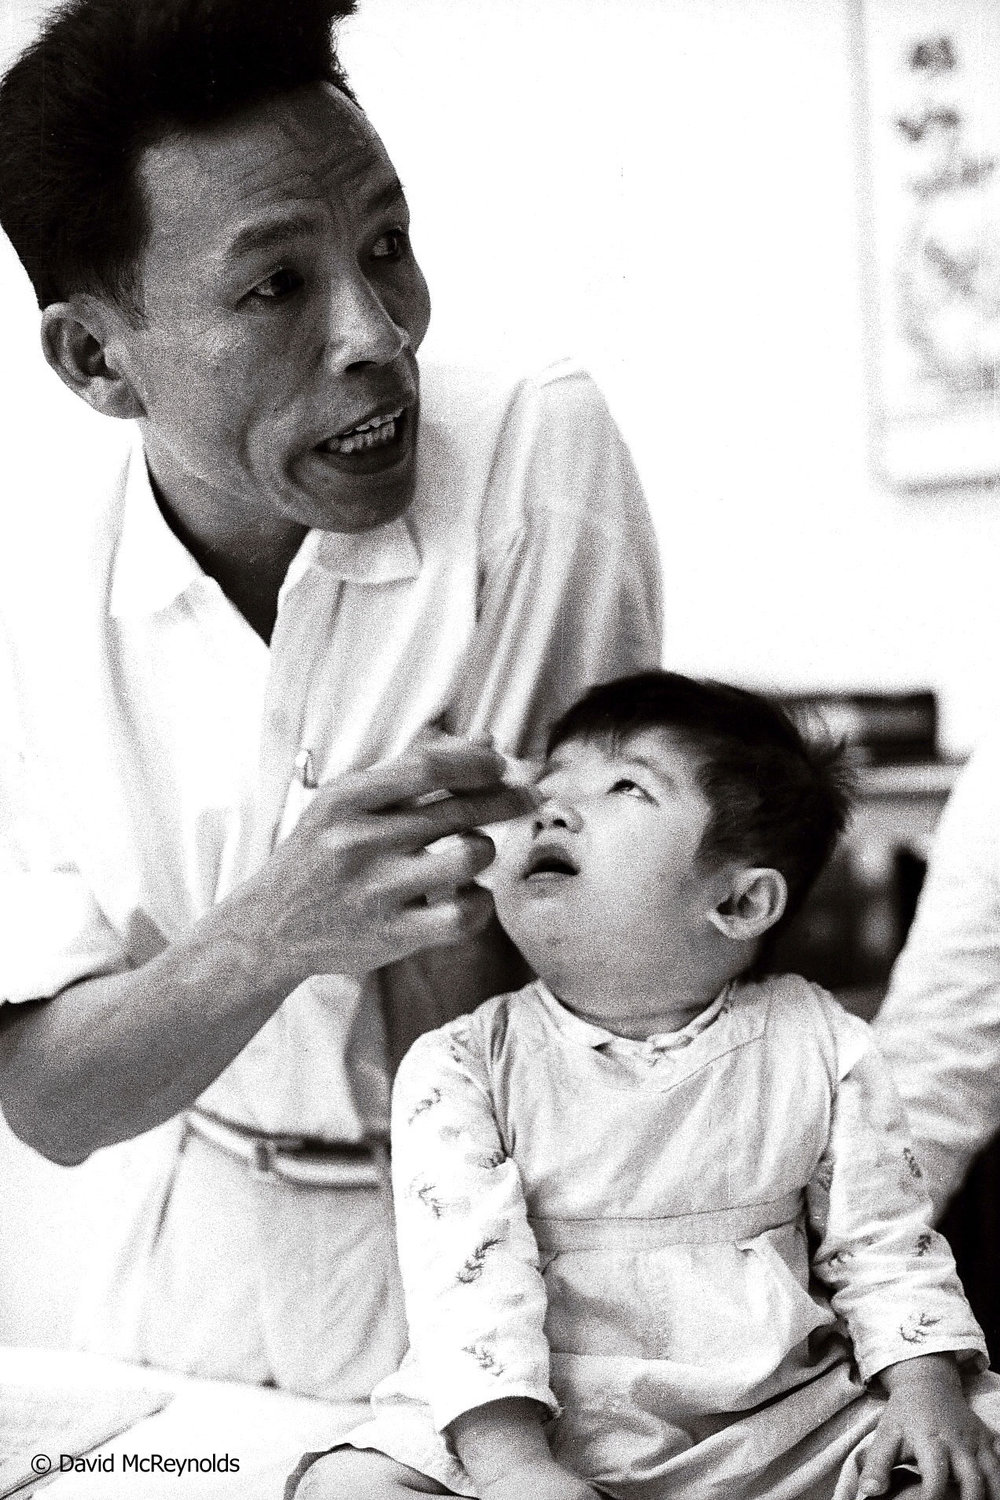 Child deformed by agent orange. Hanoi, 1971.